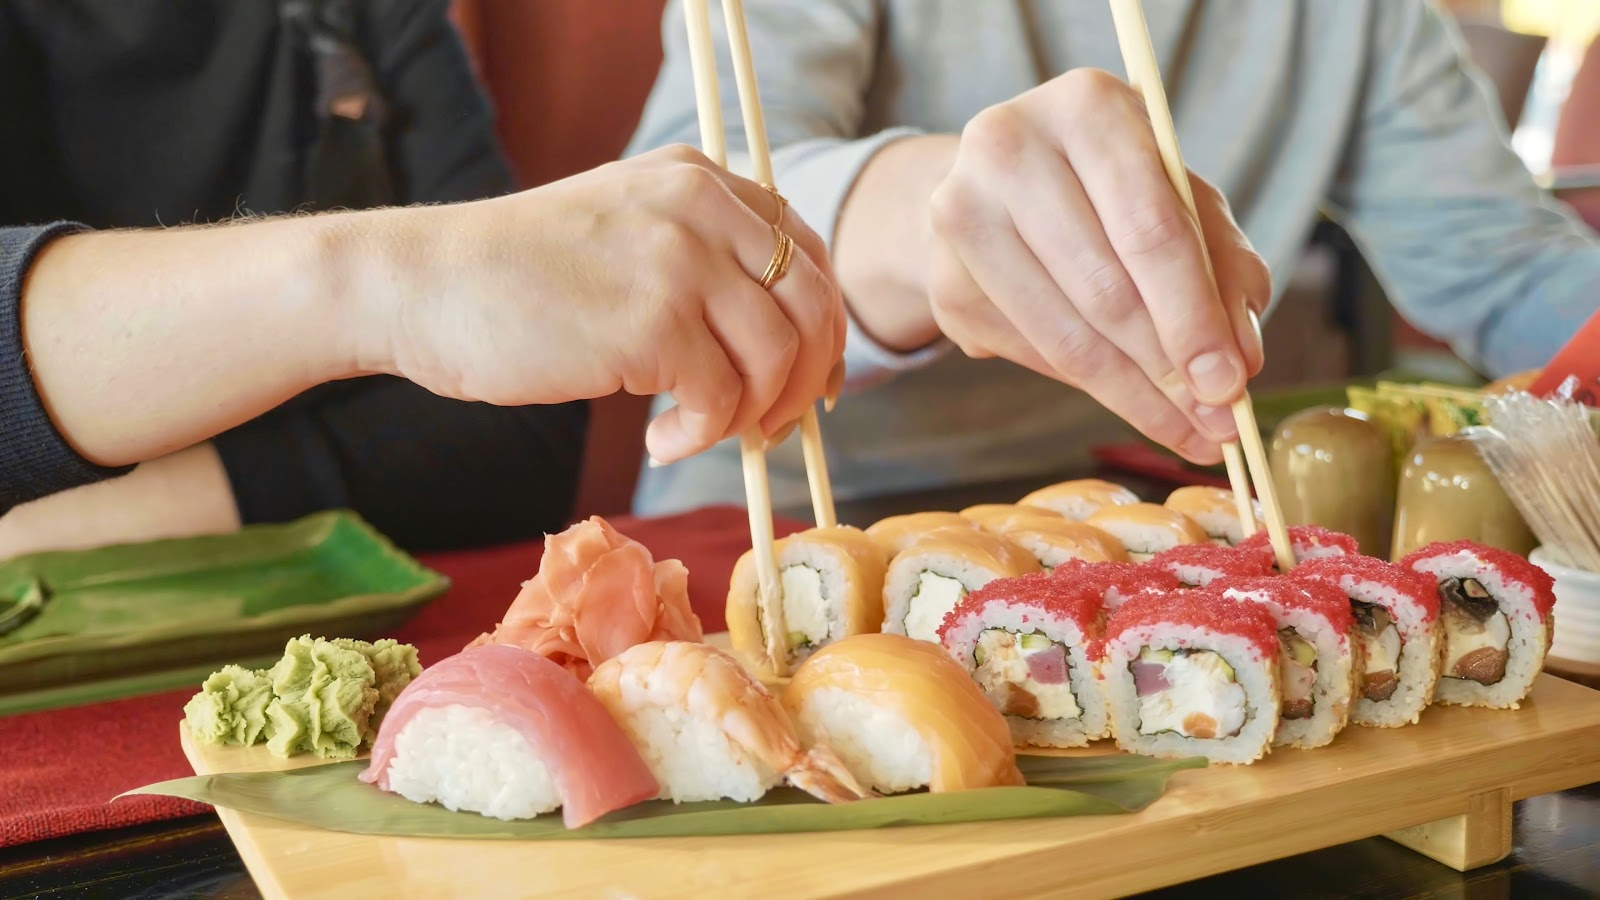 Japanese people eating sushi in the restaurant by using chopsticks.